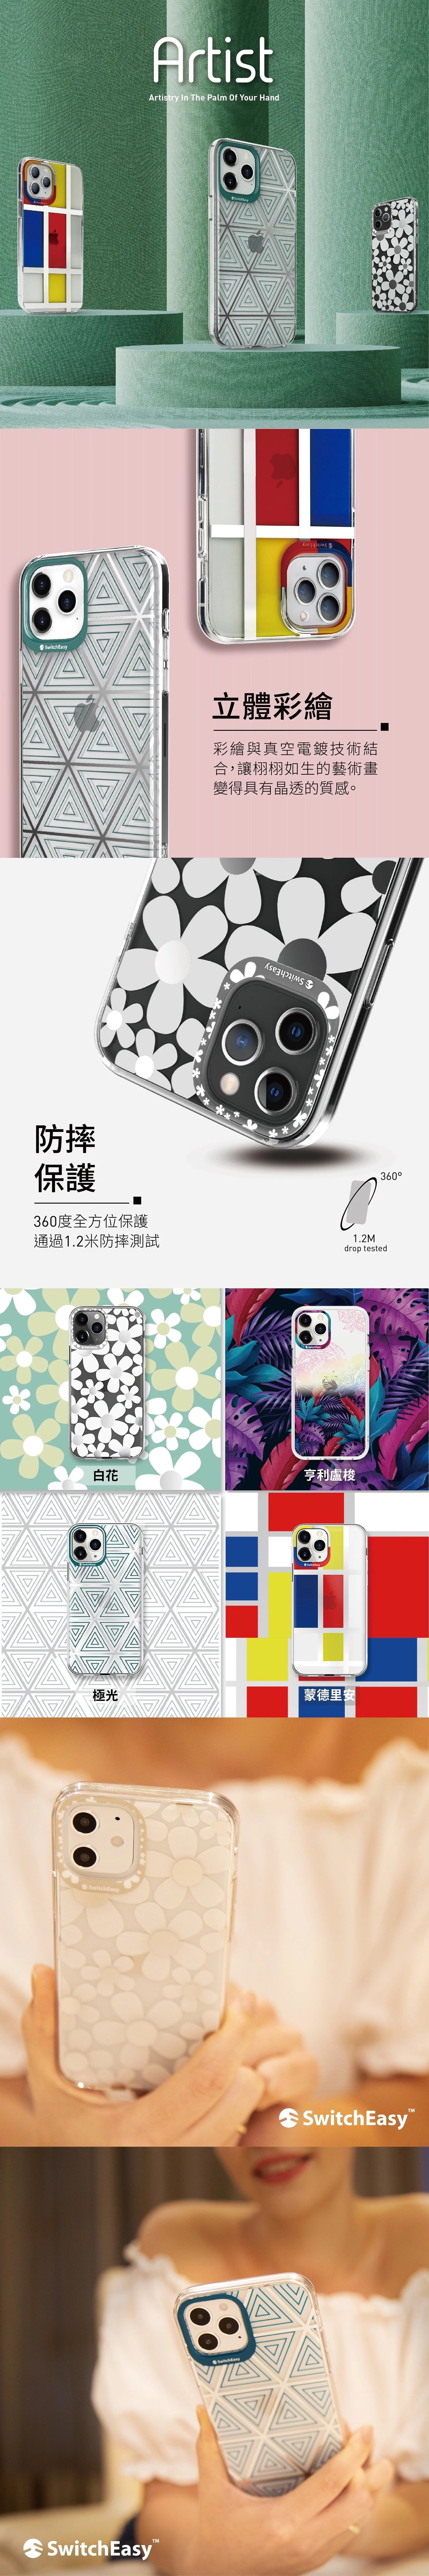 【SwitchEasy】Artist 大藝術家  iPhone 12